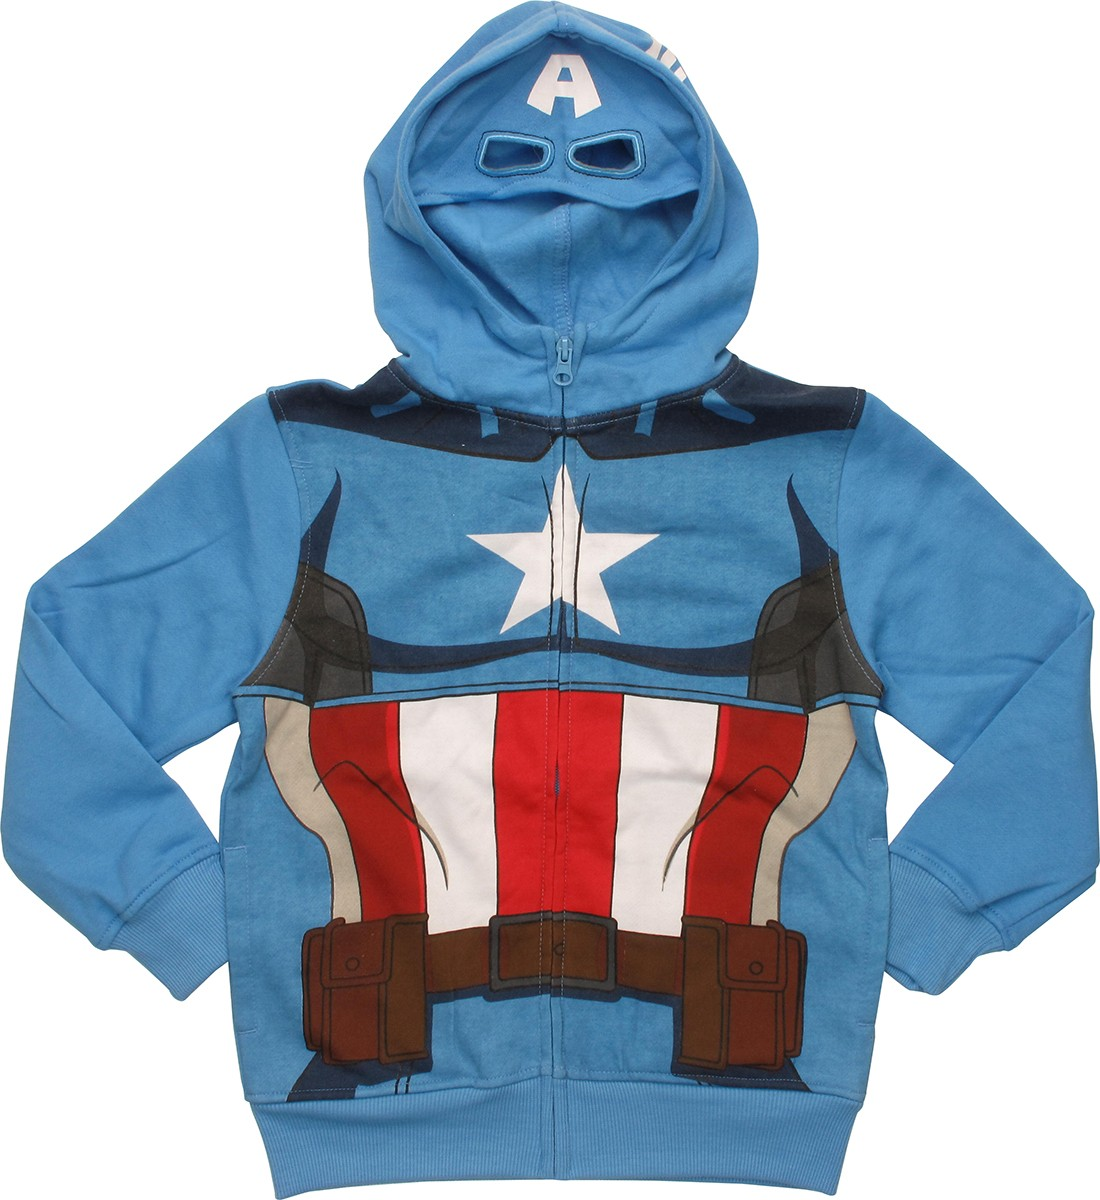 Captain america hoodie with mask